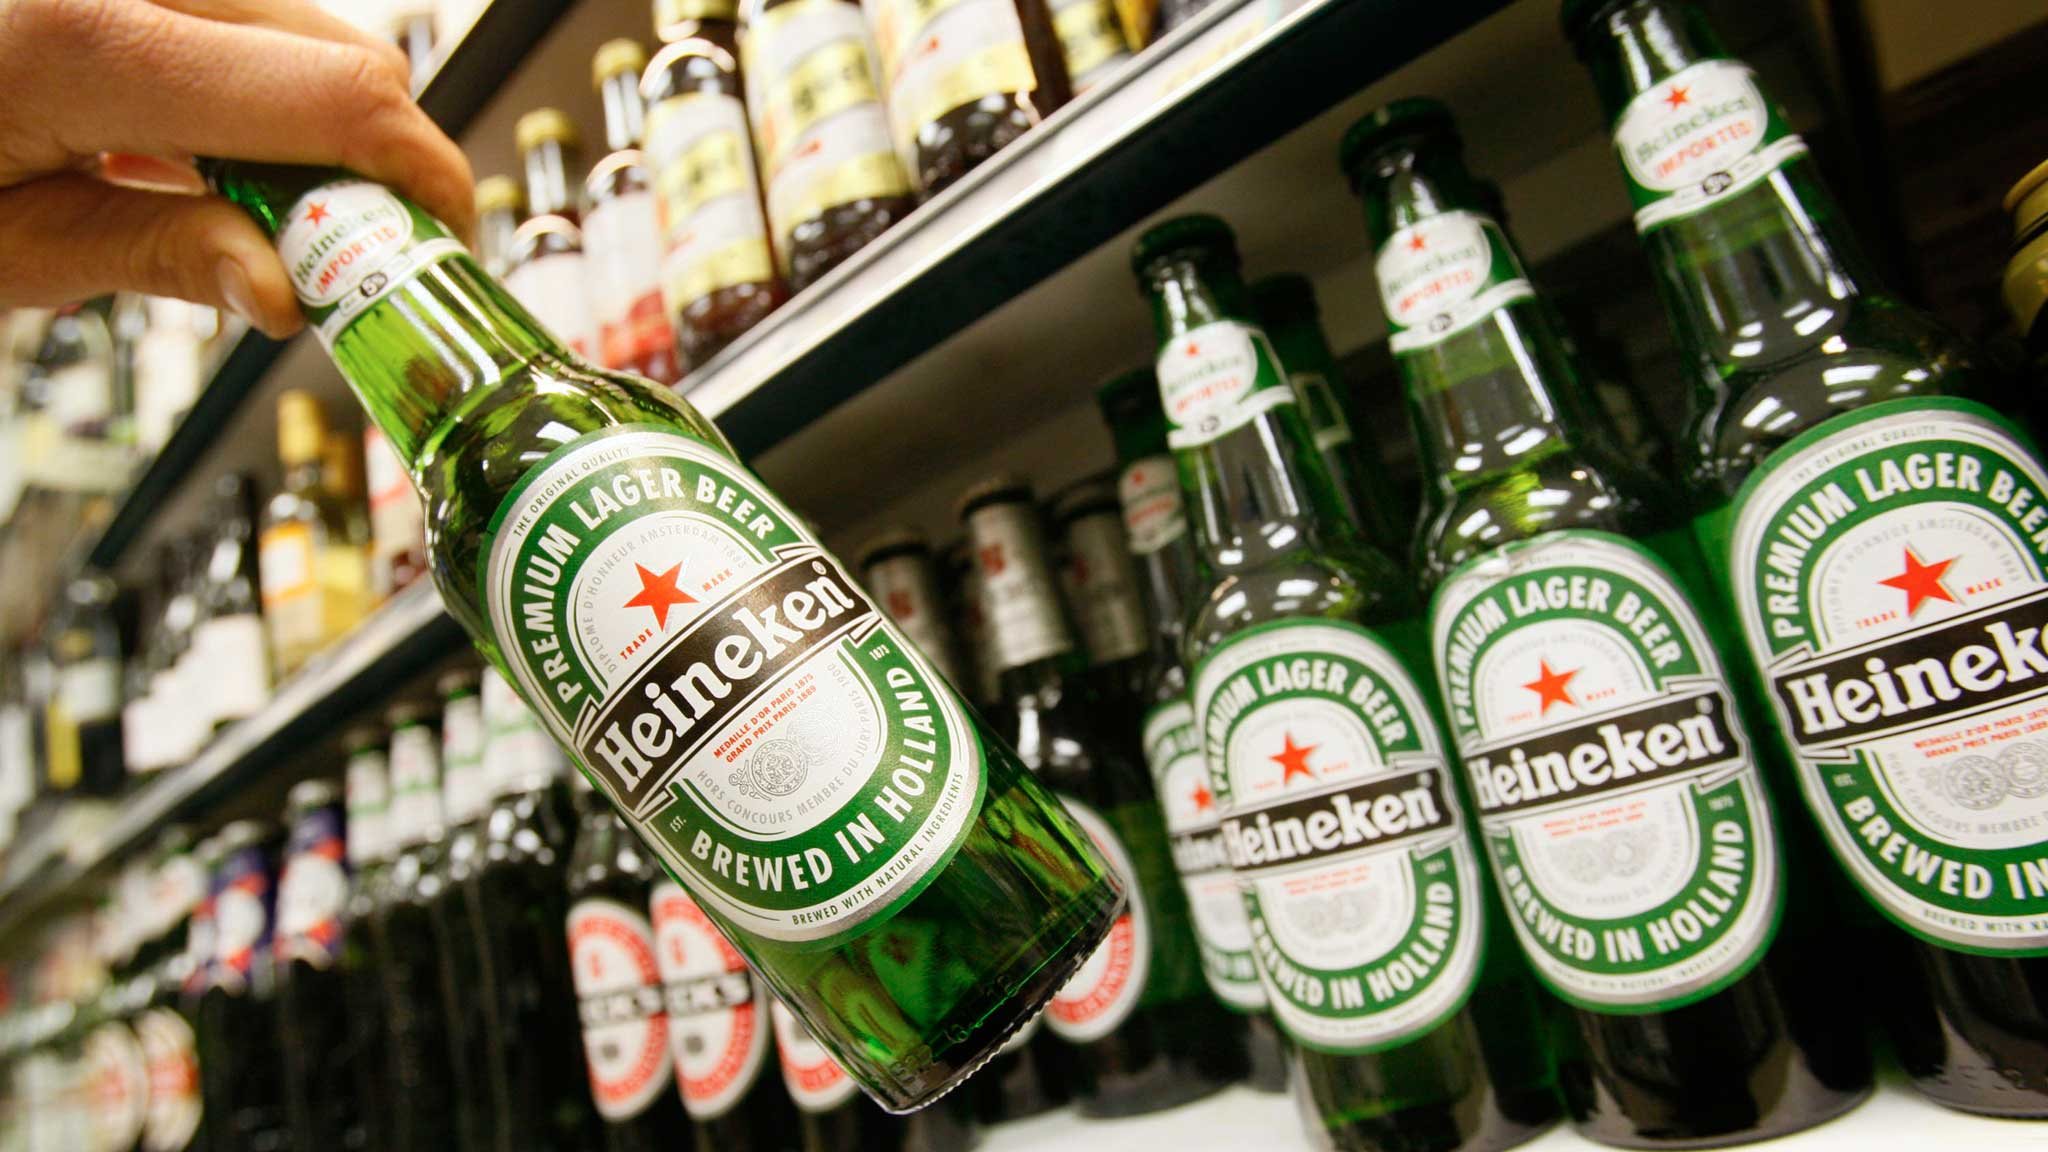 Heineken forecasts a better year ahead